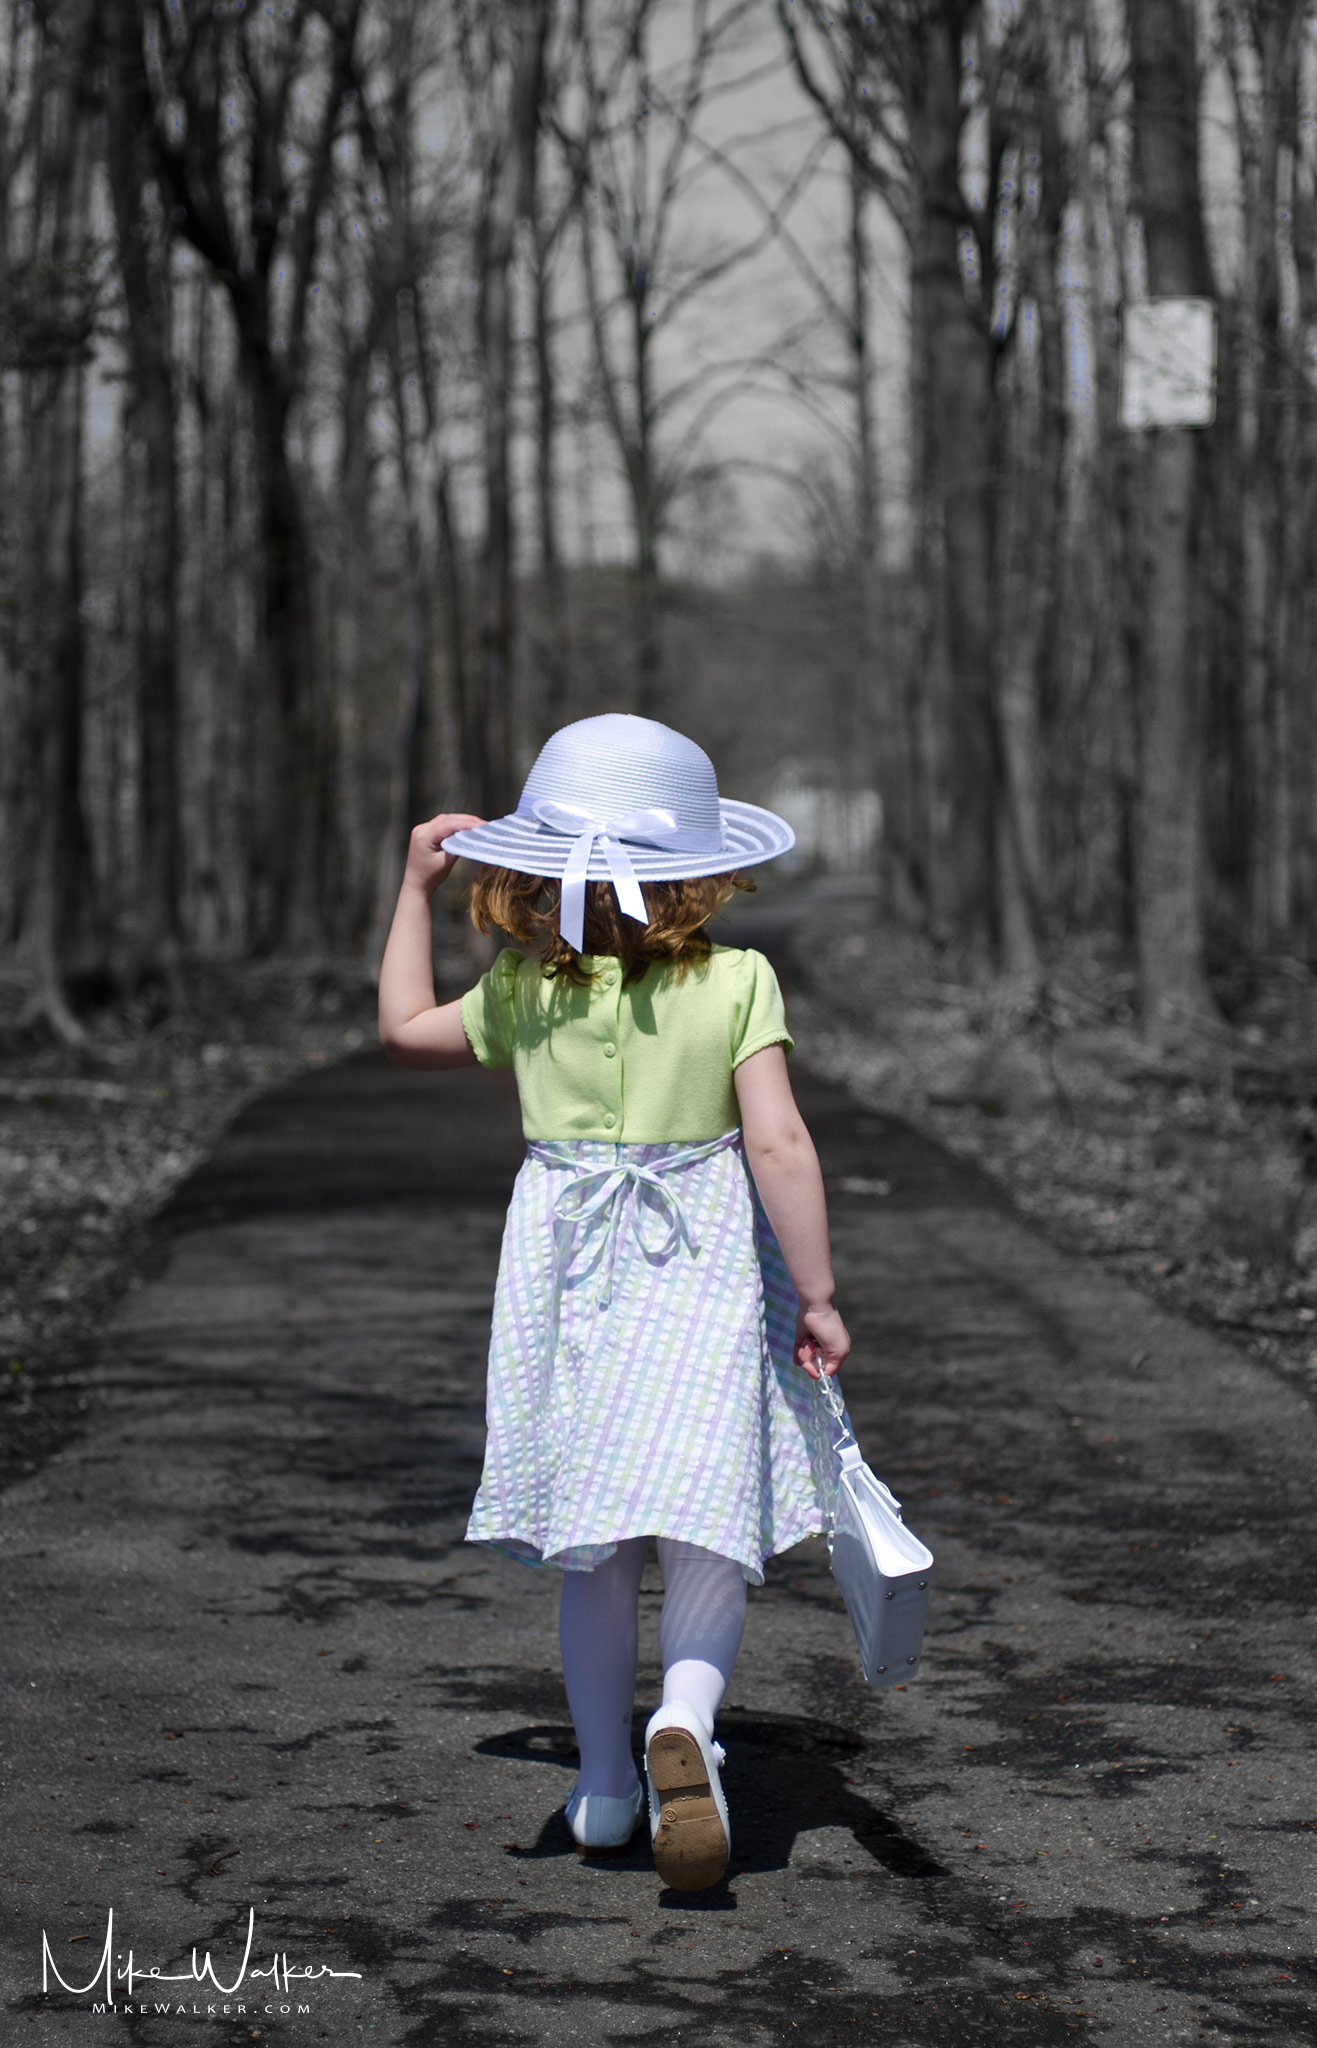 Girl walking down path in the woods. Family photography © Mike Walker